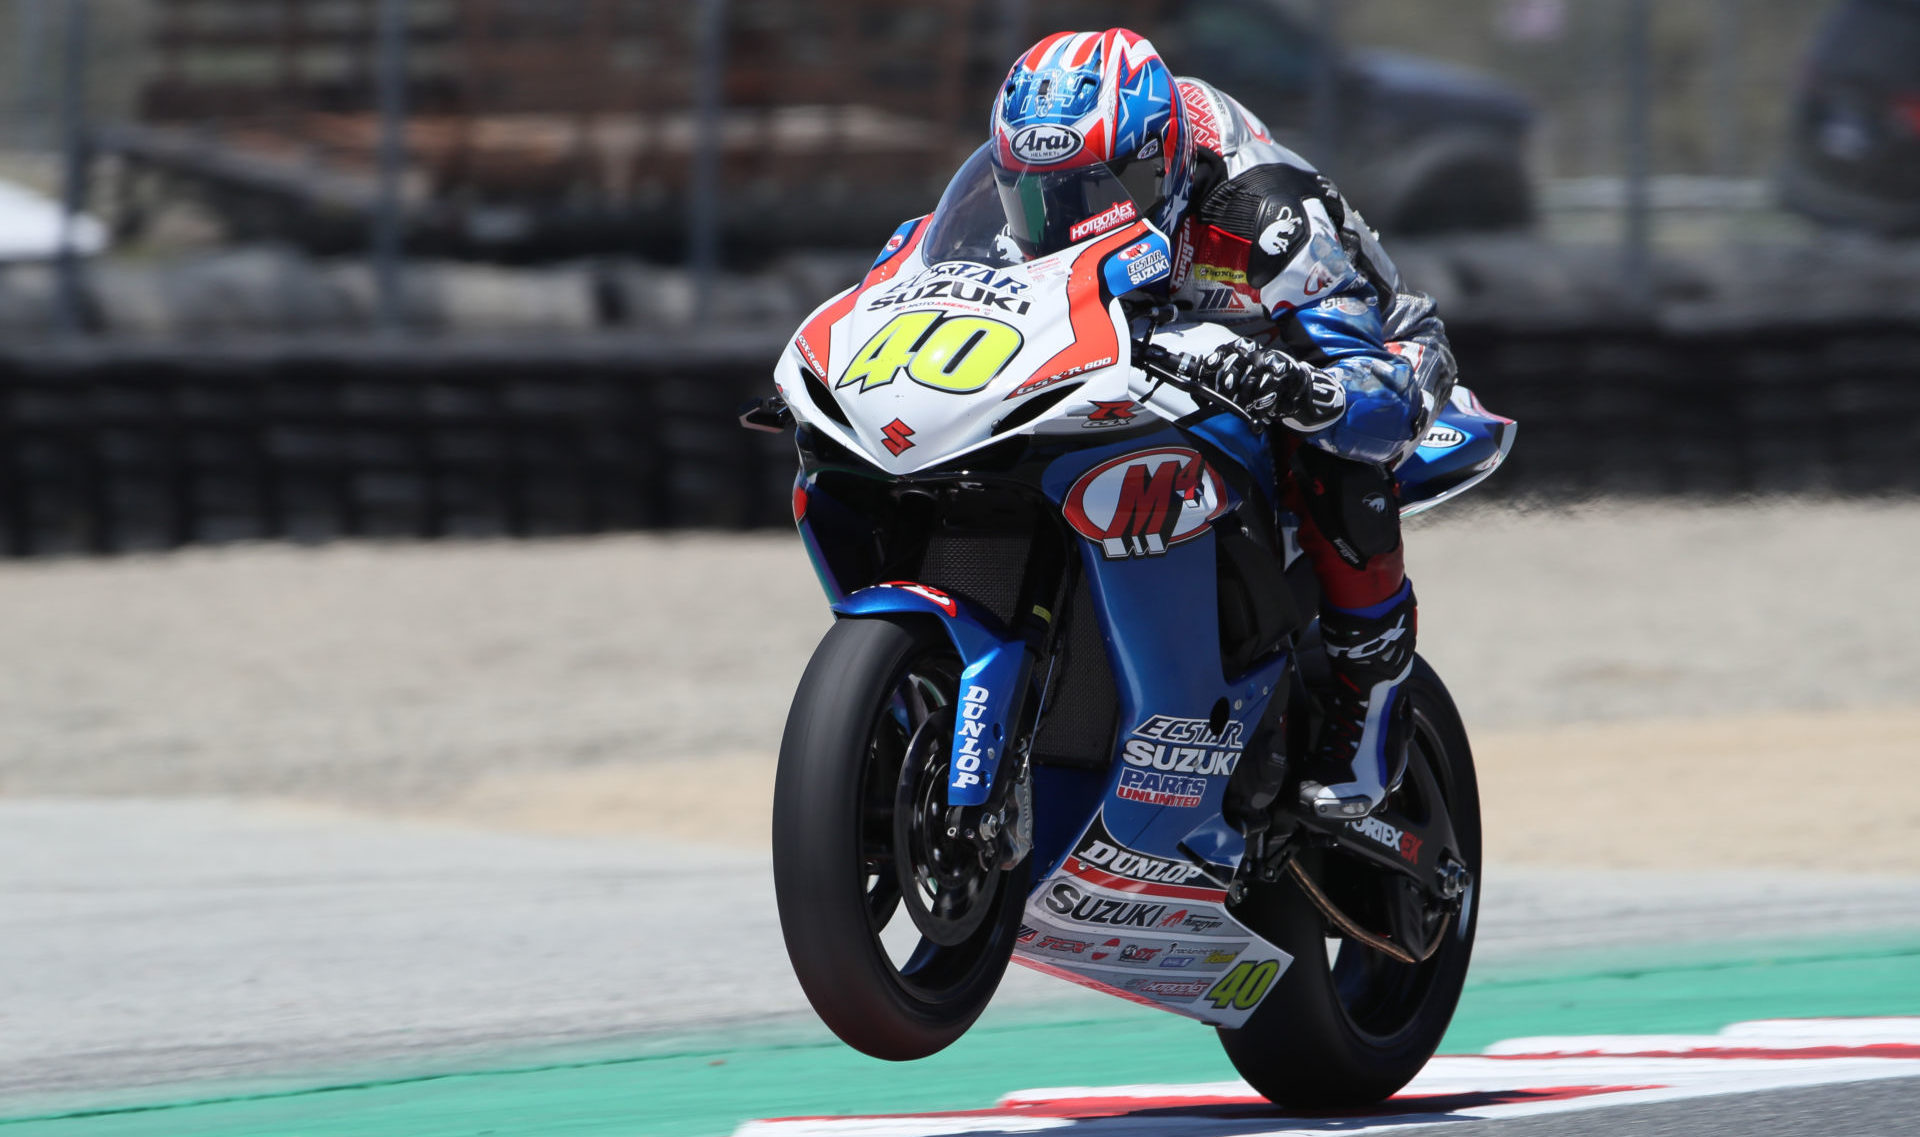 Sean Dylan Kelly (40) will make his Moto2 World Championship debut in the final round of the series held at the Ricardo Tormo Circuit in Valencia, Spain. Photo by Brian J. Nelson.